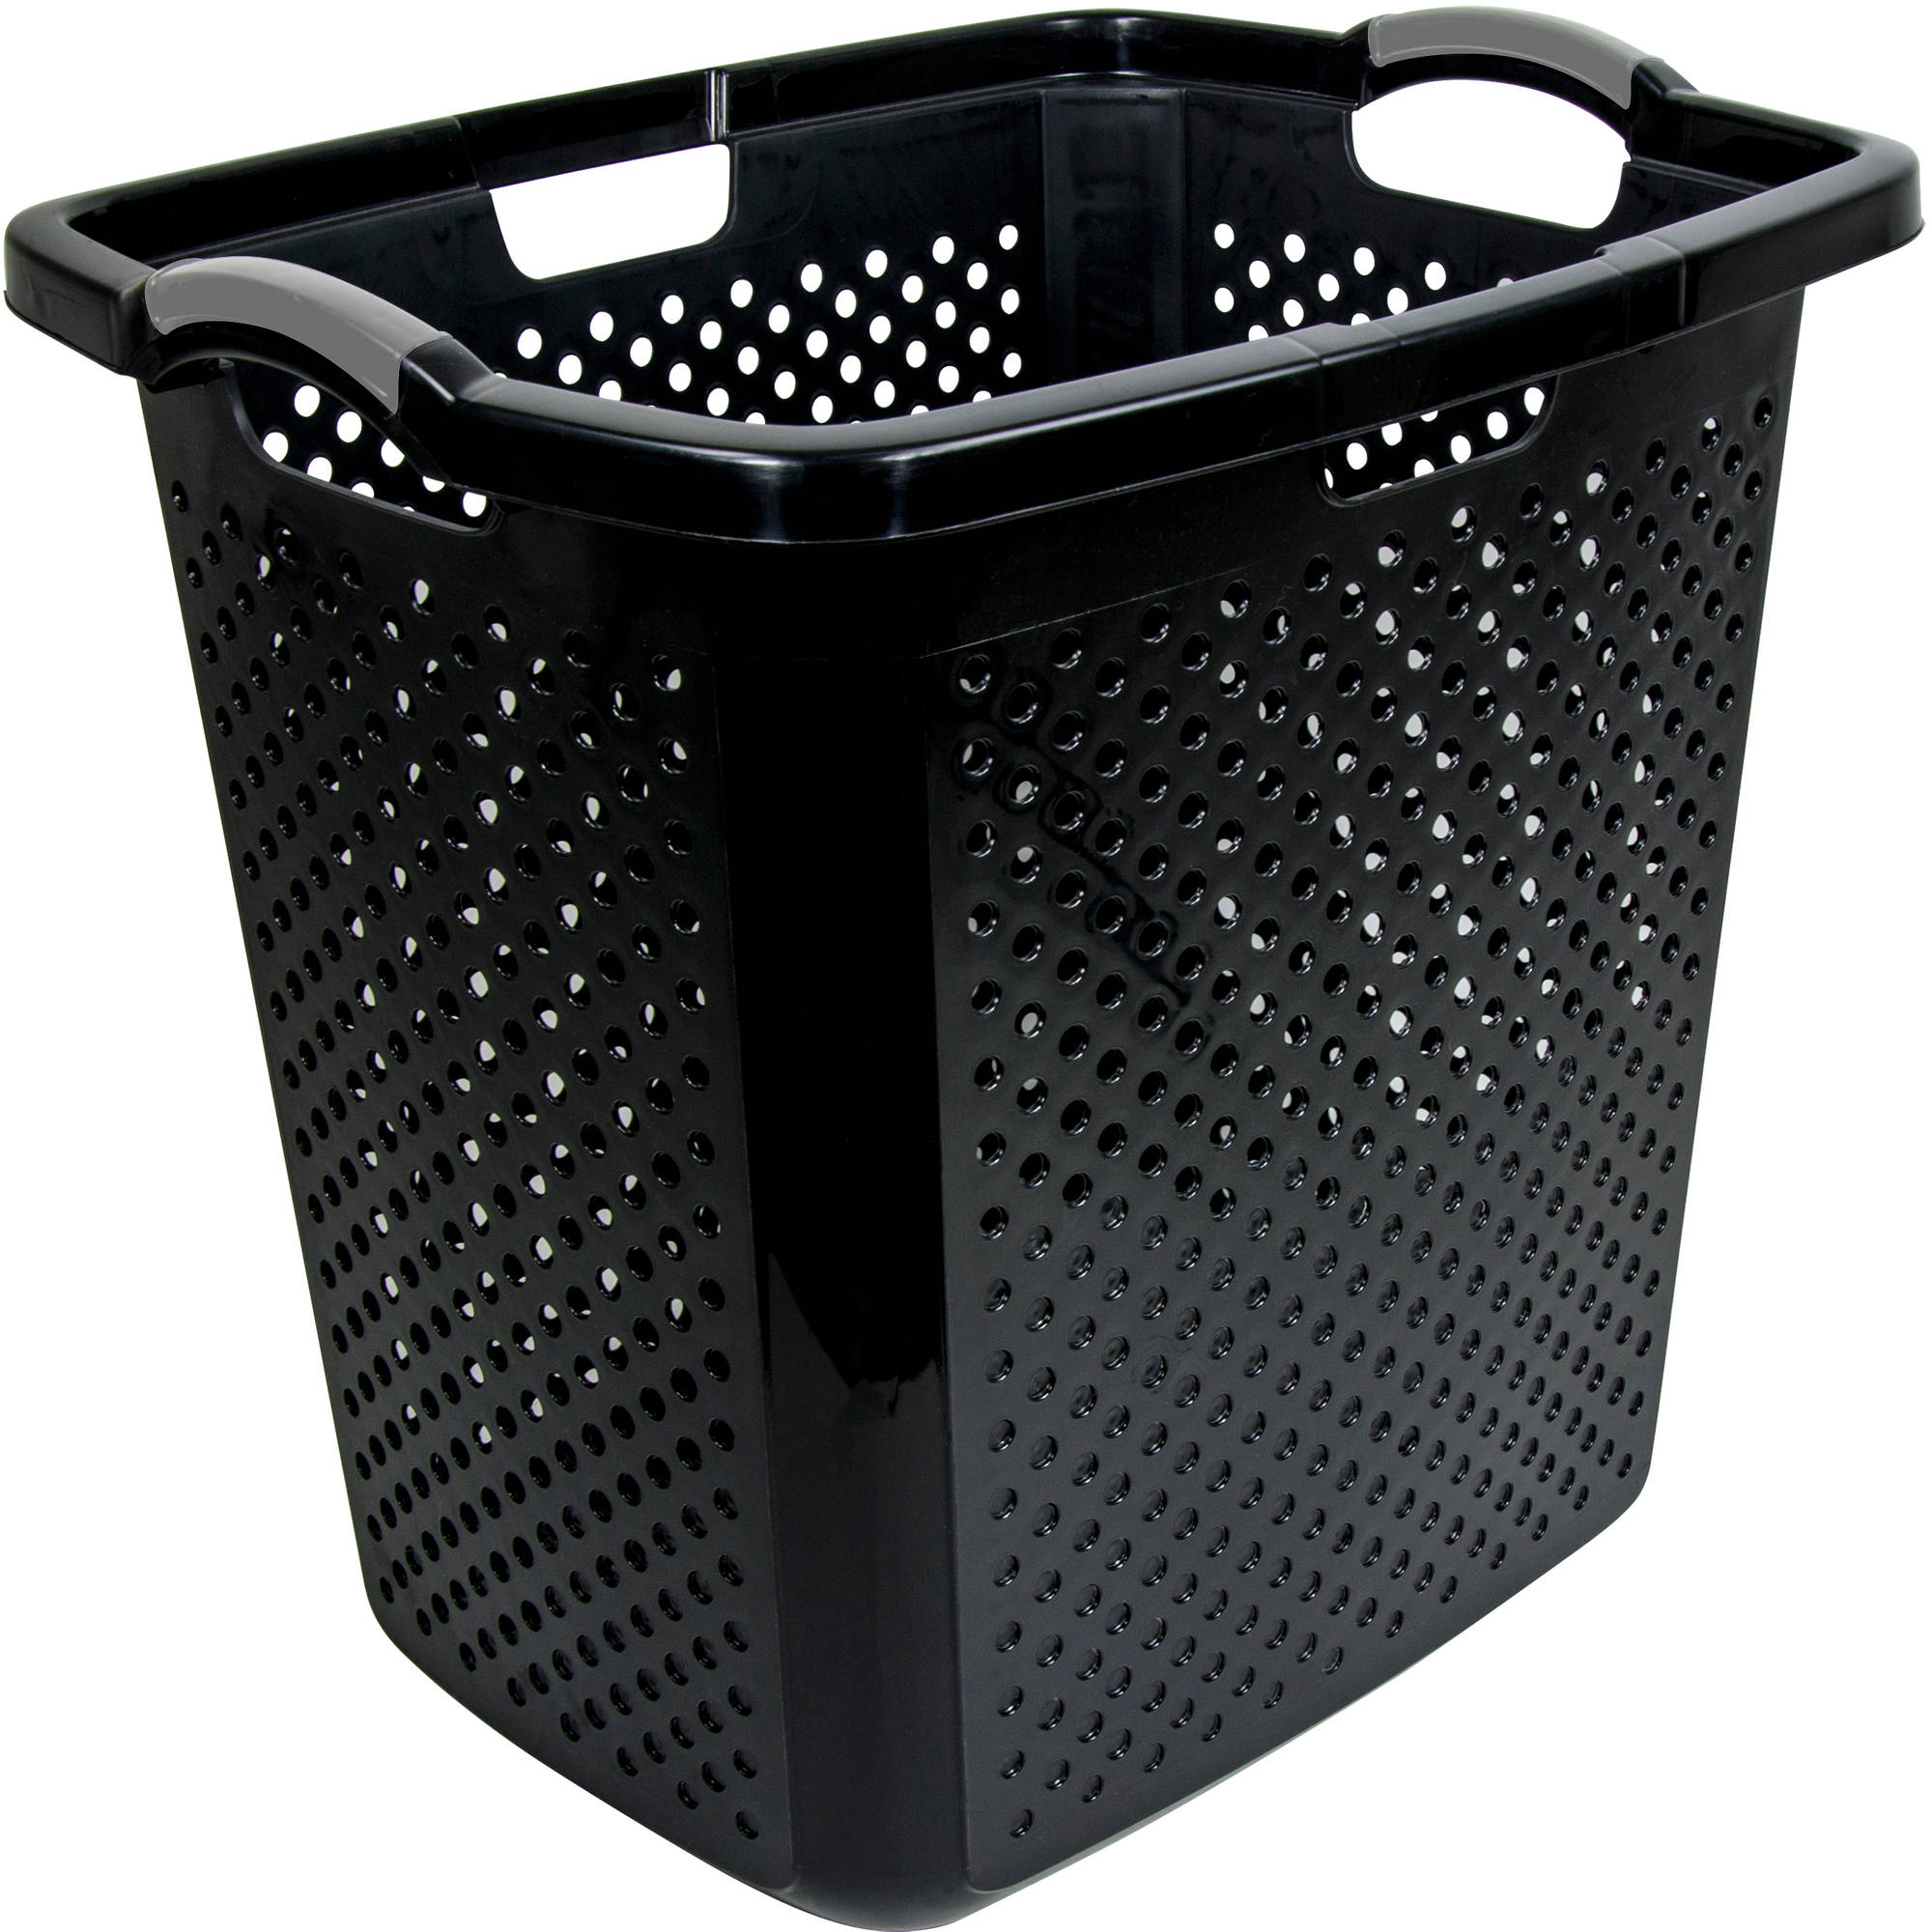 Home Logic 2.5-Bu XL-Capacity Lamper Laundry Basket and Hamper